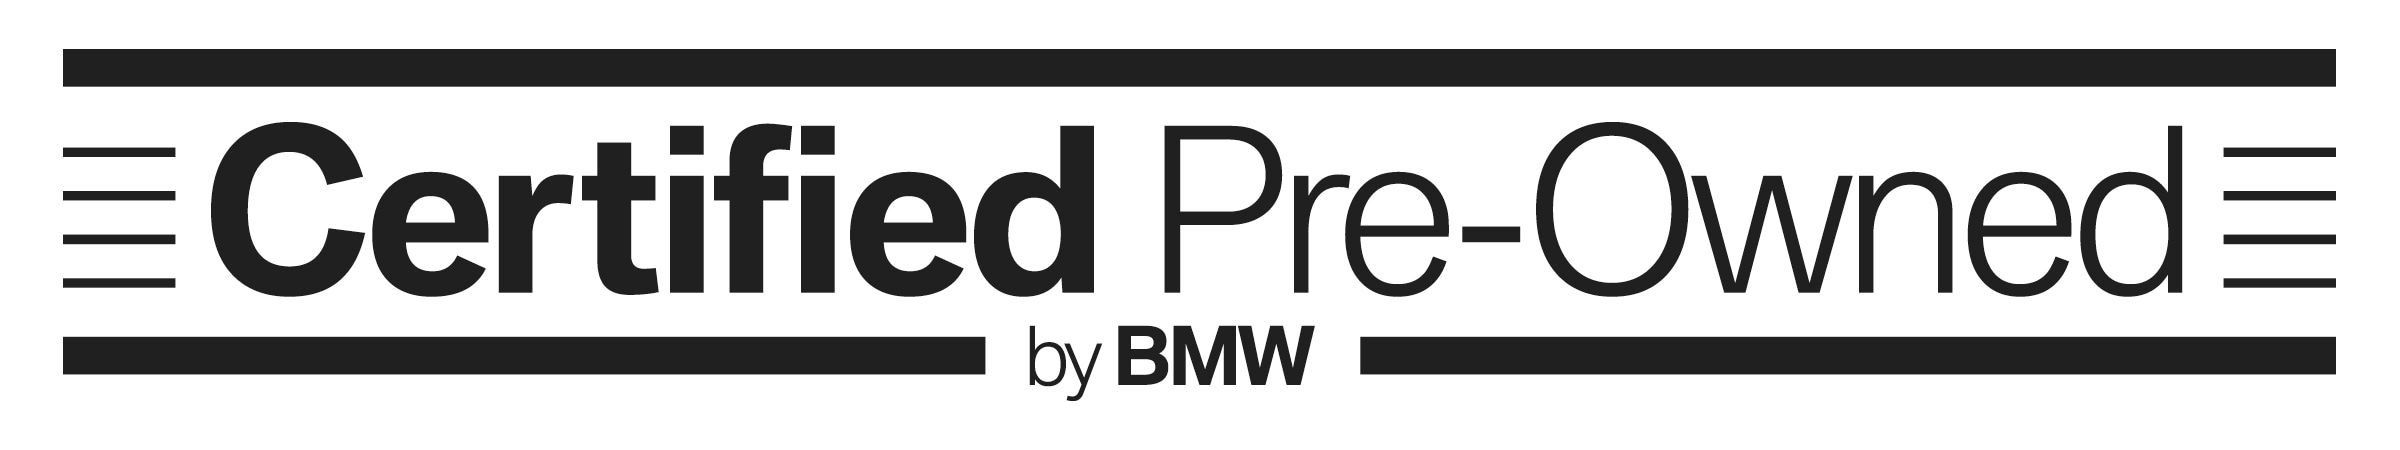 Lease Certified Pre Owned >> Weatherford Bmw Berkeley Ca Center Of Excellence Serving The